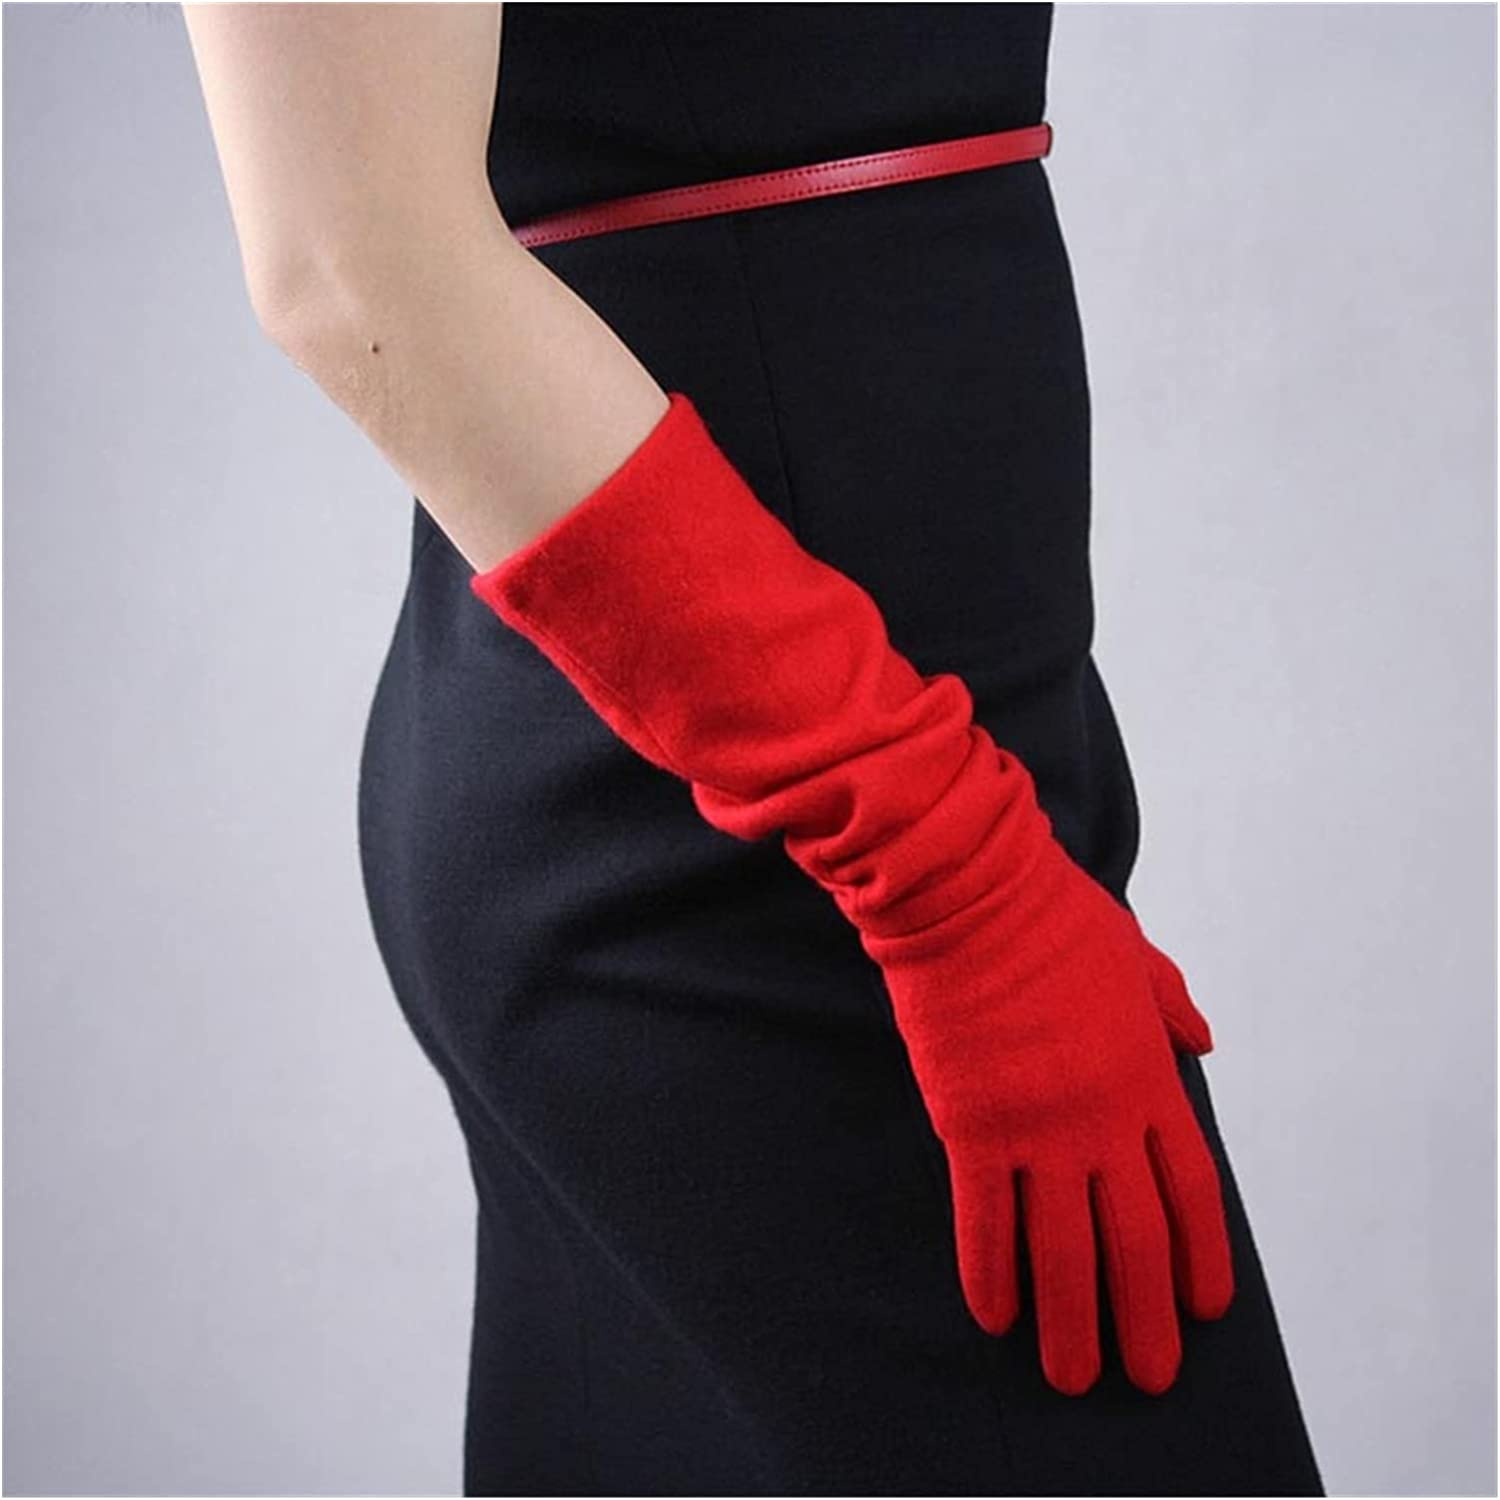 CHHNGPON Bridal Gloves Xmas Gifts Winter Warm Gloves Womens Wool Long Gloves Mittens Touchscreen Knit Gloves Arthritis Arm Warmers Gray Black (Color : Red)